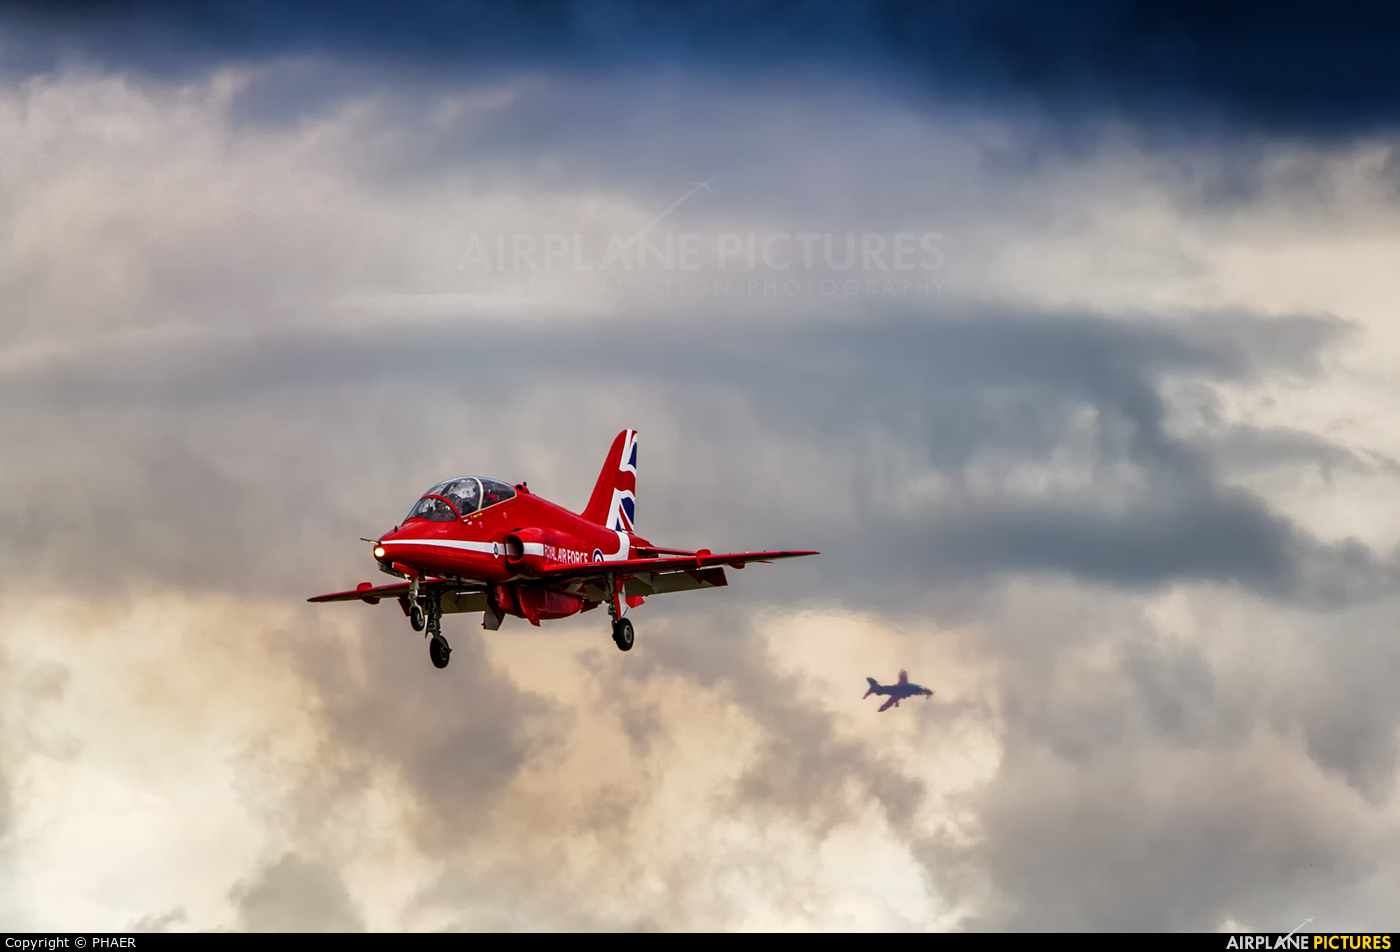 xx182 com_XX186 - Royal Air Force Red Arrows British Aerospace Hawk T.1/ 1A at Farnborough ...